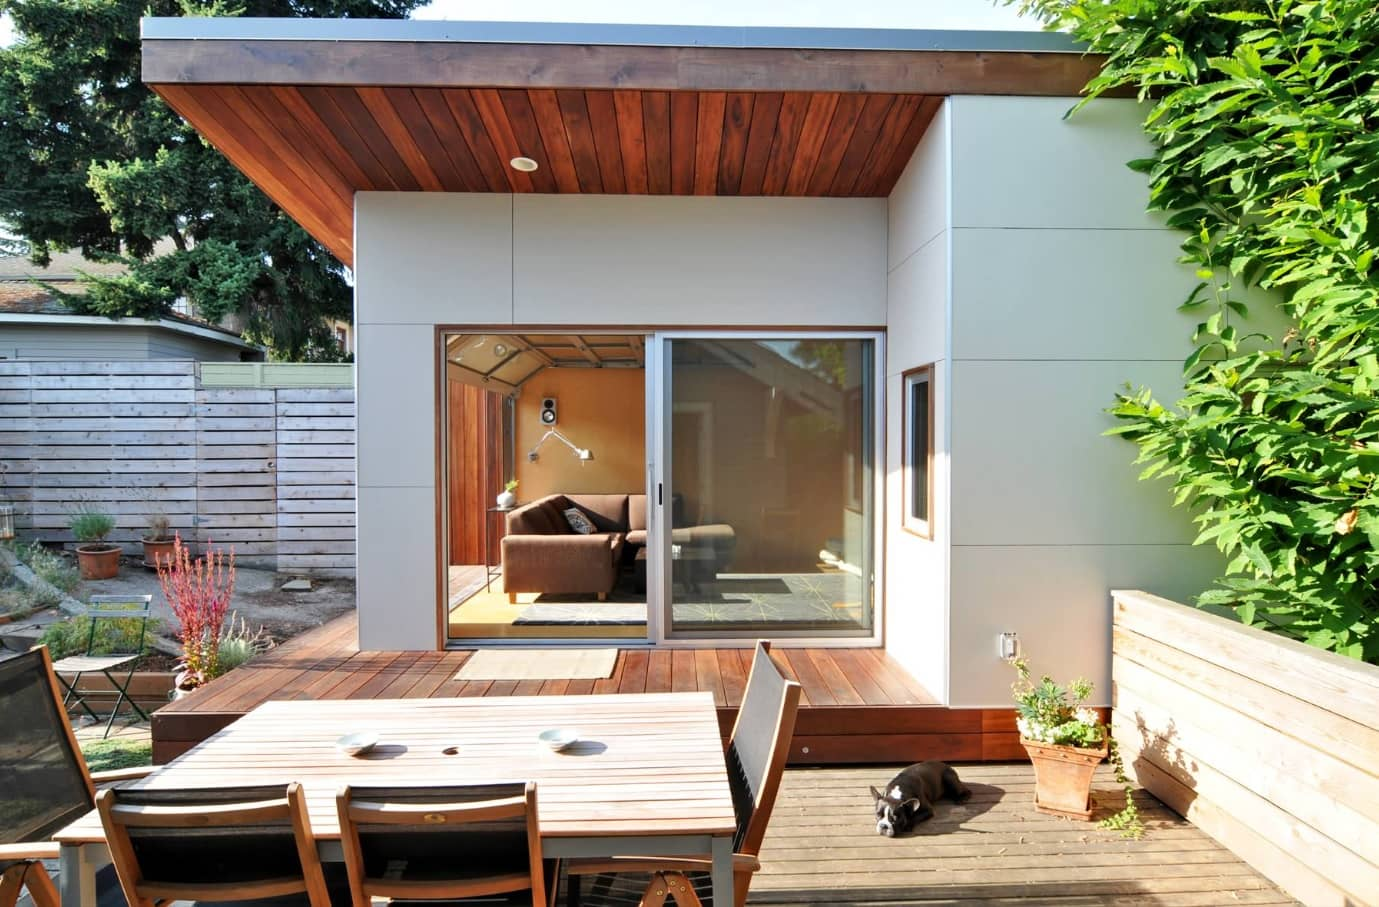 Sliding Glass Doors and Glass Wall Panels in Modern Commercial Interiors. Outside view if the backyard of the cottage with wooden platform outside the building